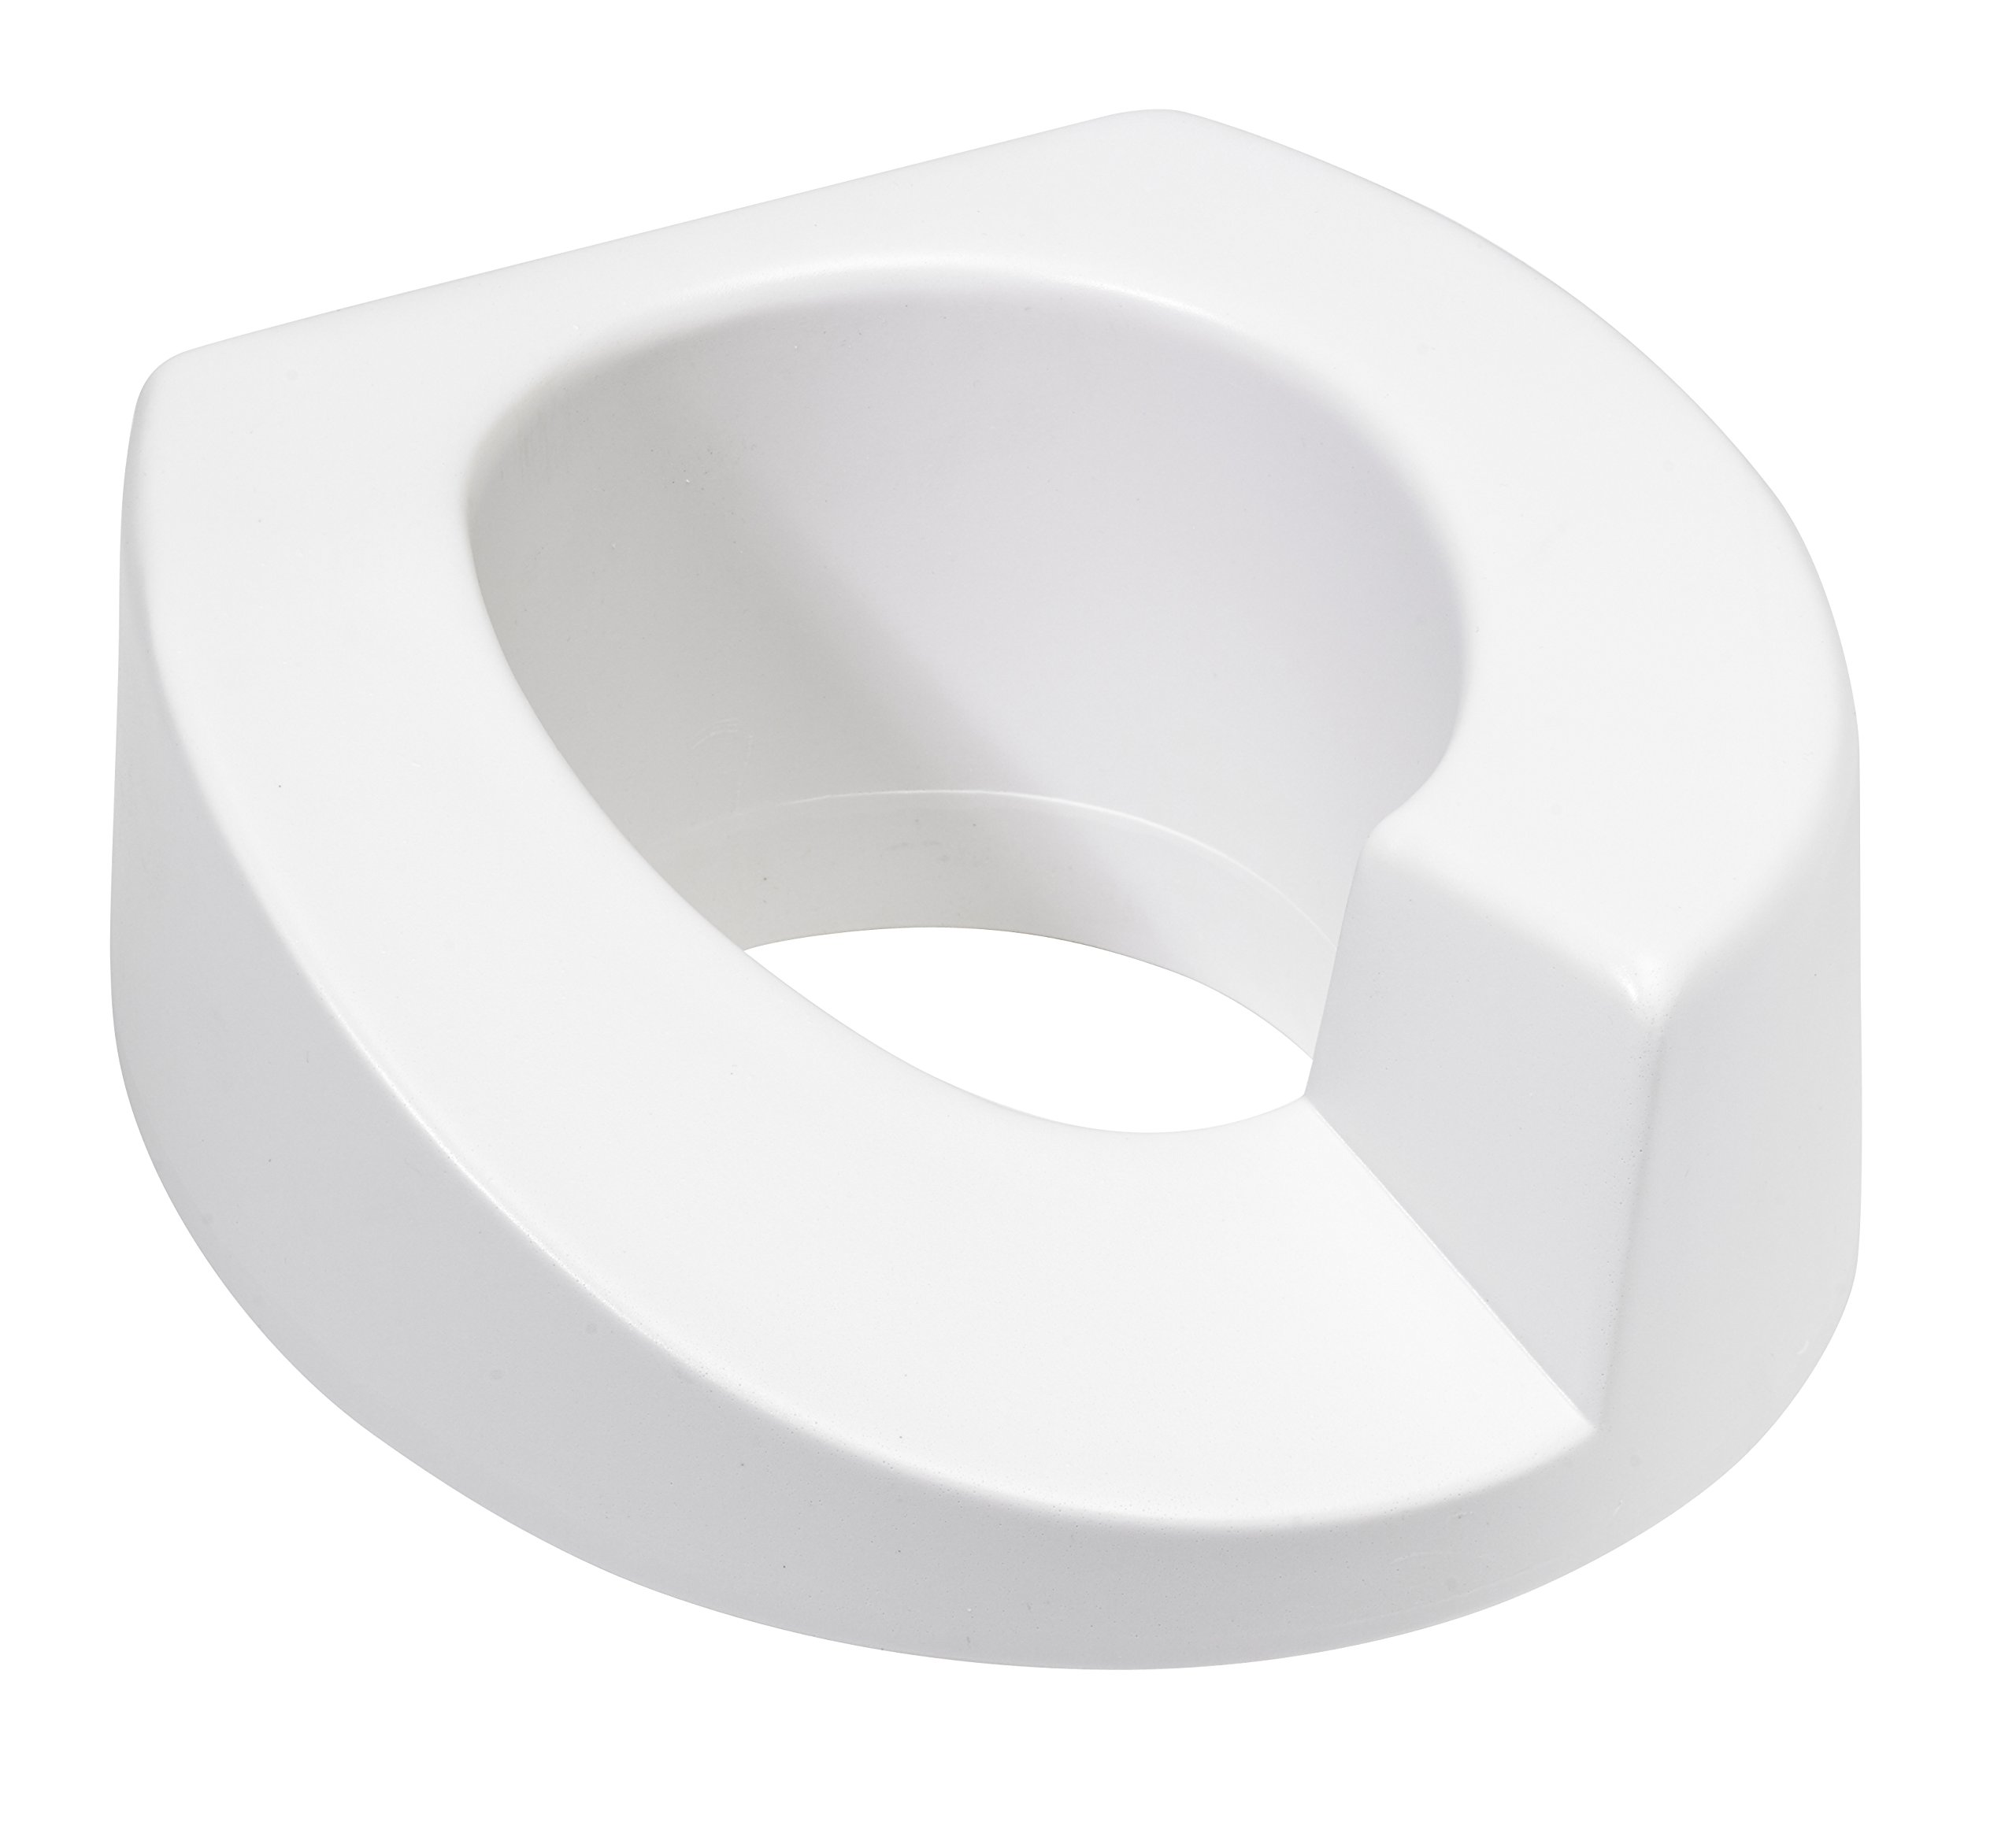 Ableware 725921000 Right Standard Elevated Toilet Seat